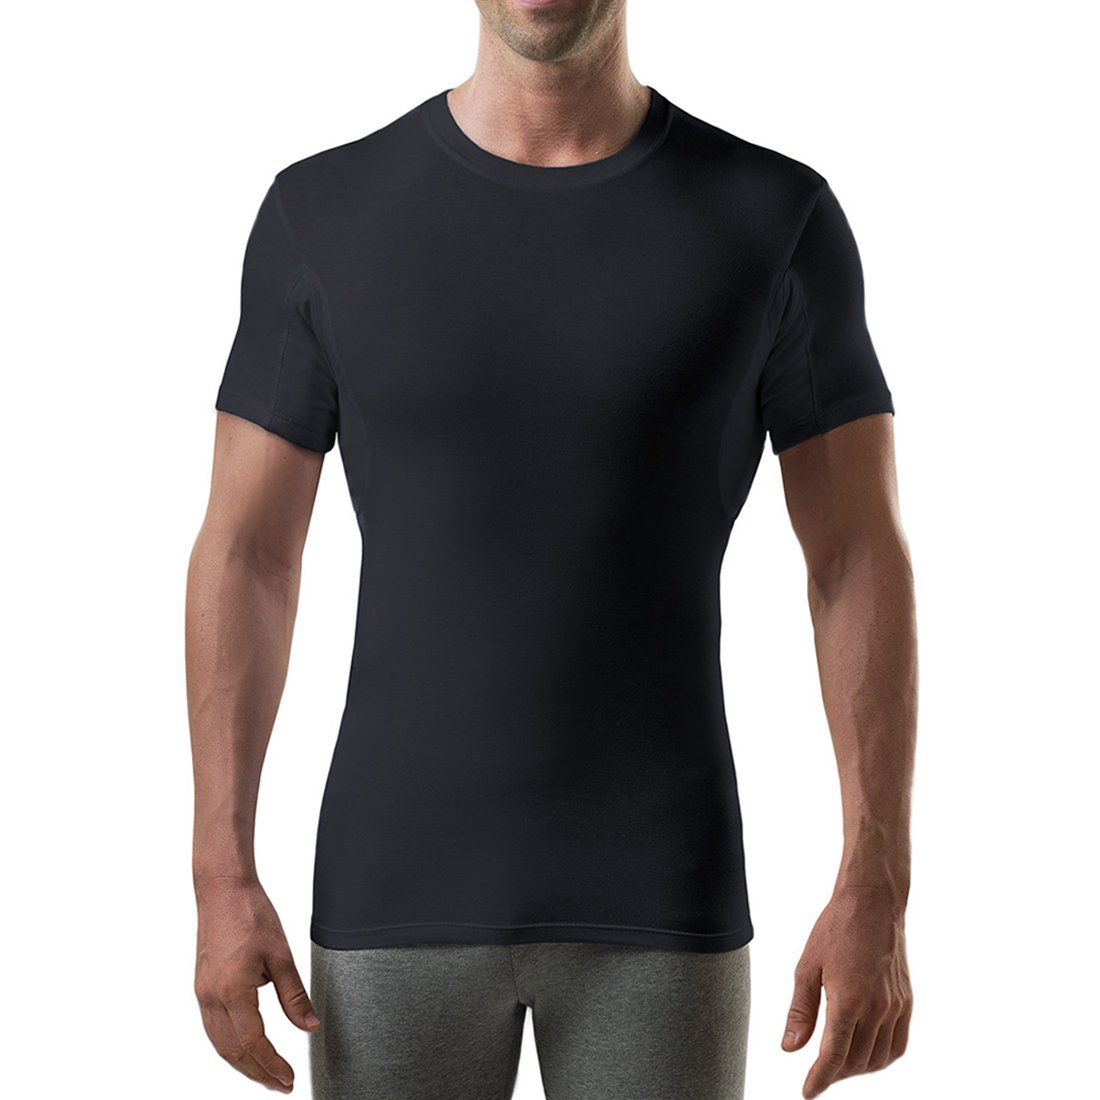 Sweatproof Undershirt for Men with Underarm Sweat Pads (Slim Fit, Crew Neck) by T THOMPSON TEE